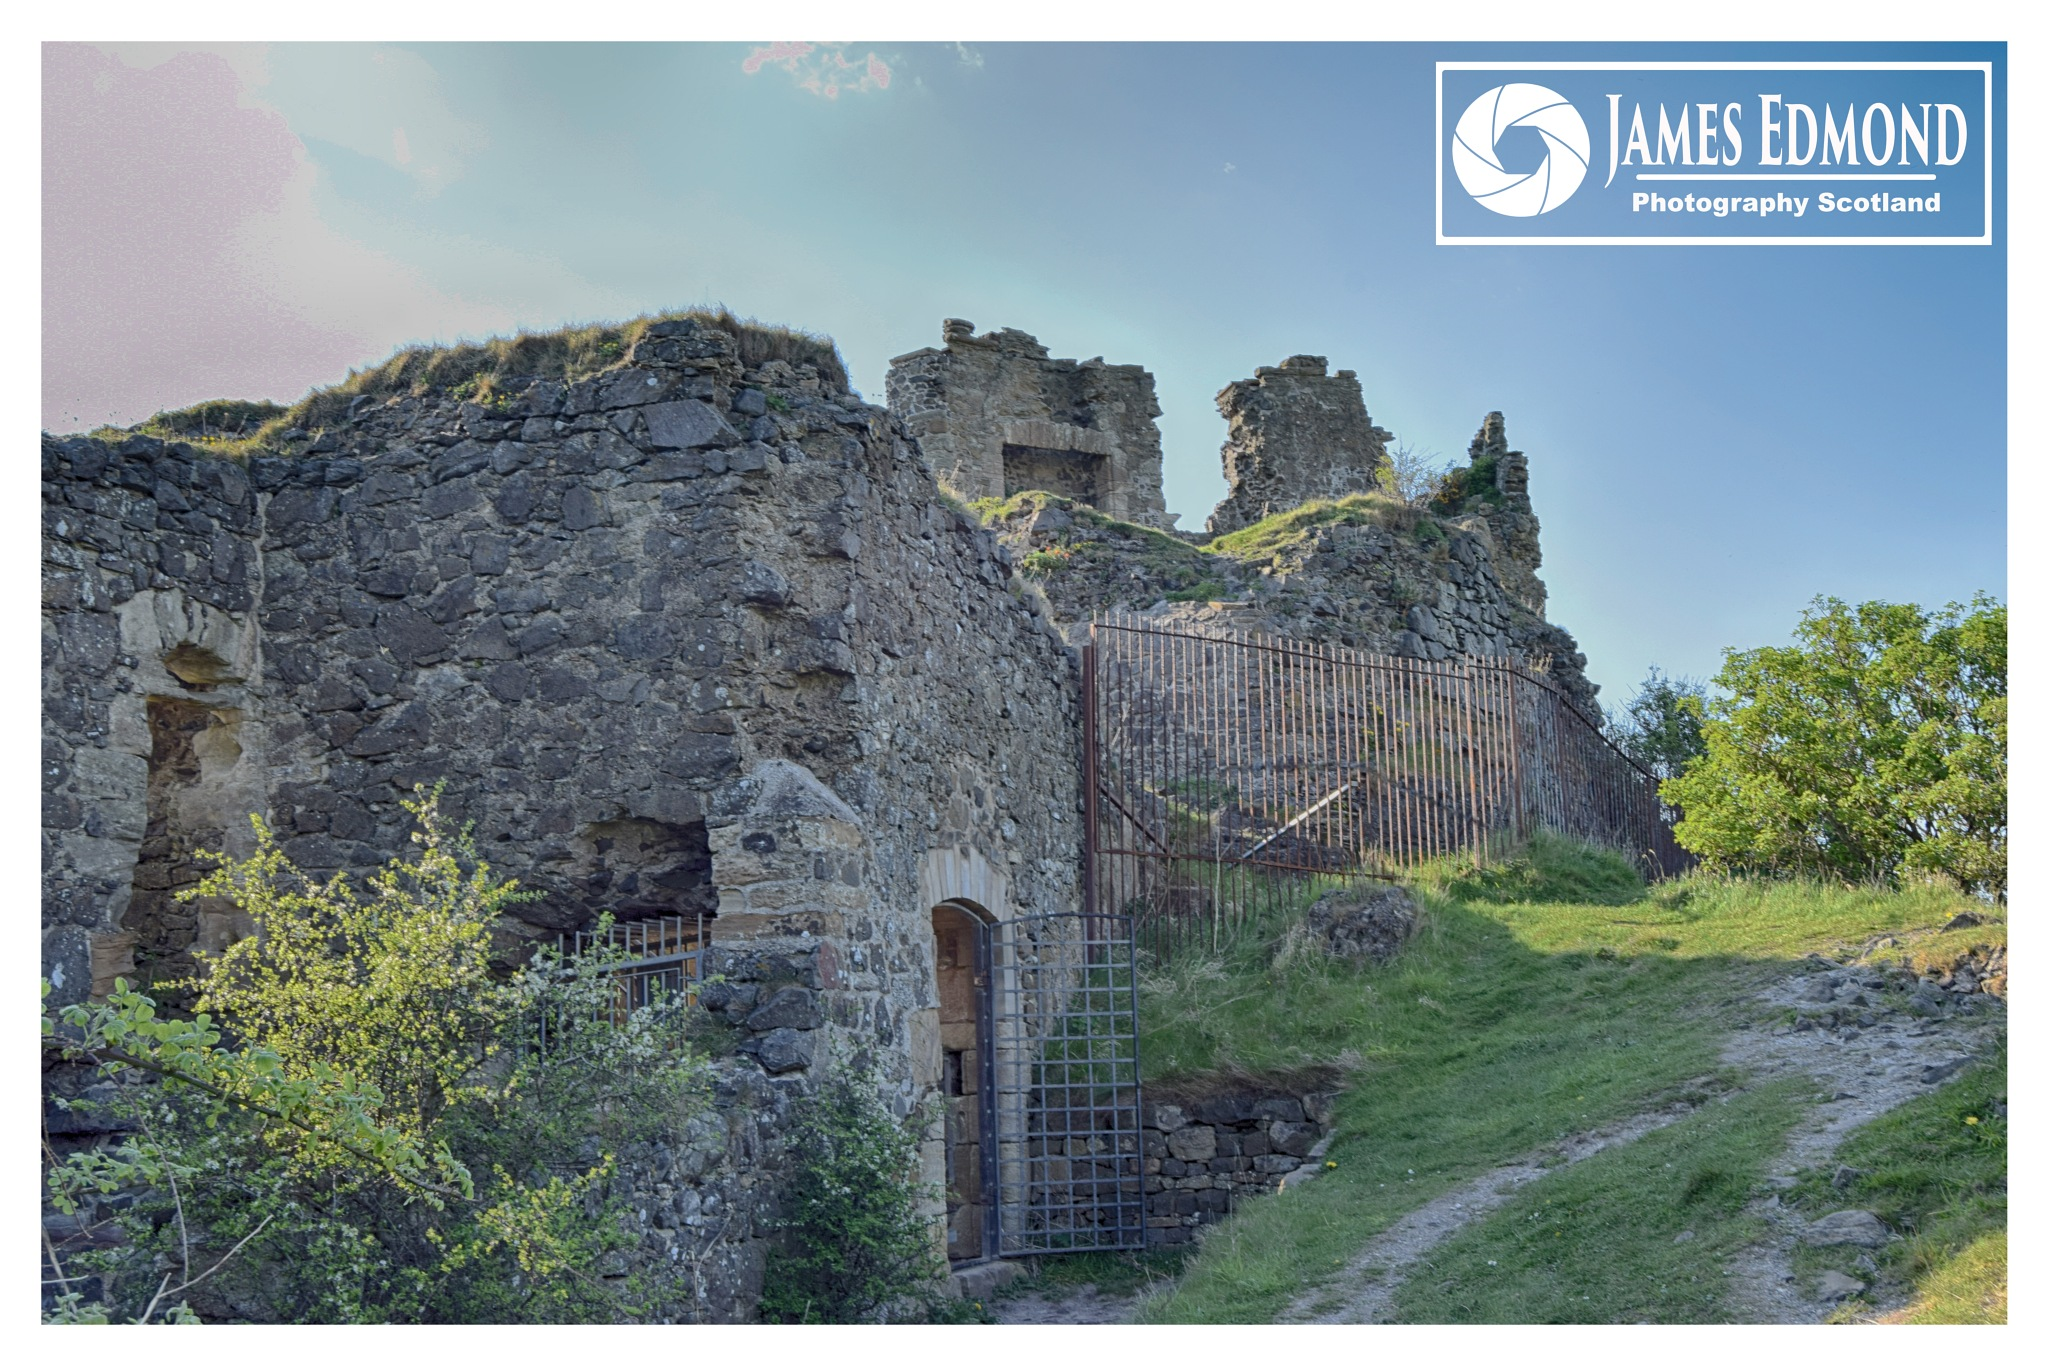 Castle Ruins in Ayrshire Scotland by James Edmond Photography